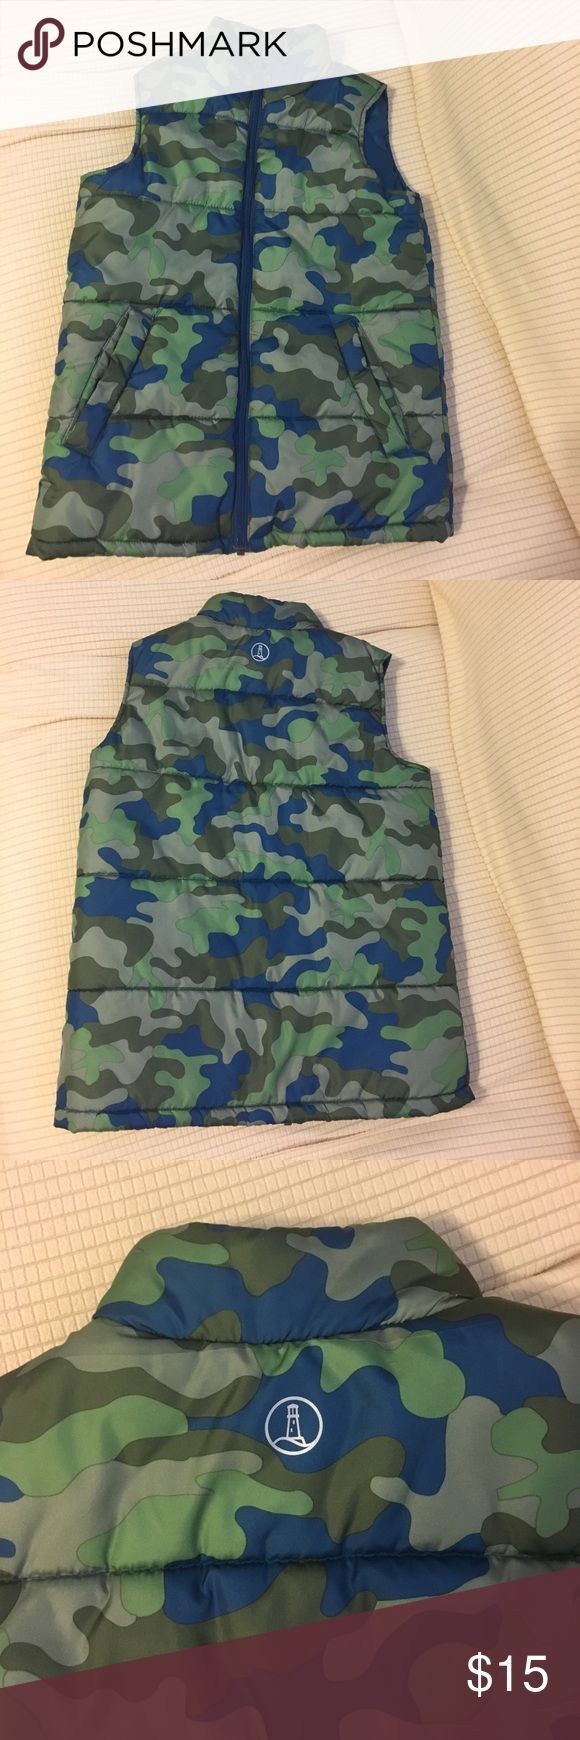 Lands End Camouflage quilted vest boys Lands End blue and green camouflage quilted or puffer boys vest. Has front pockets and zip front size 8 runs large made of polyester. In perfect condition barely worn. Lands' End Jackets & Coats Vests